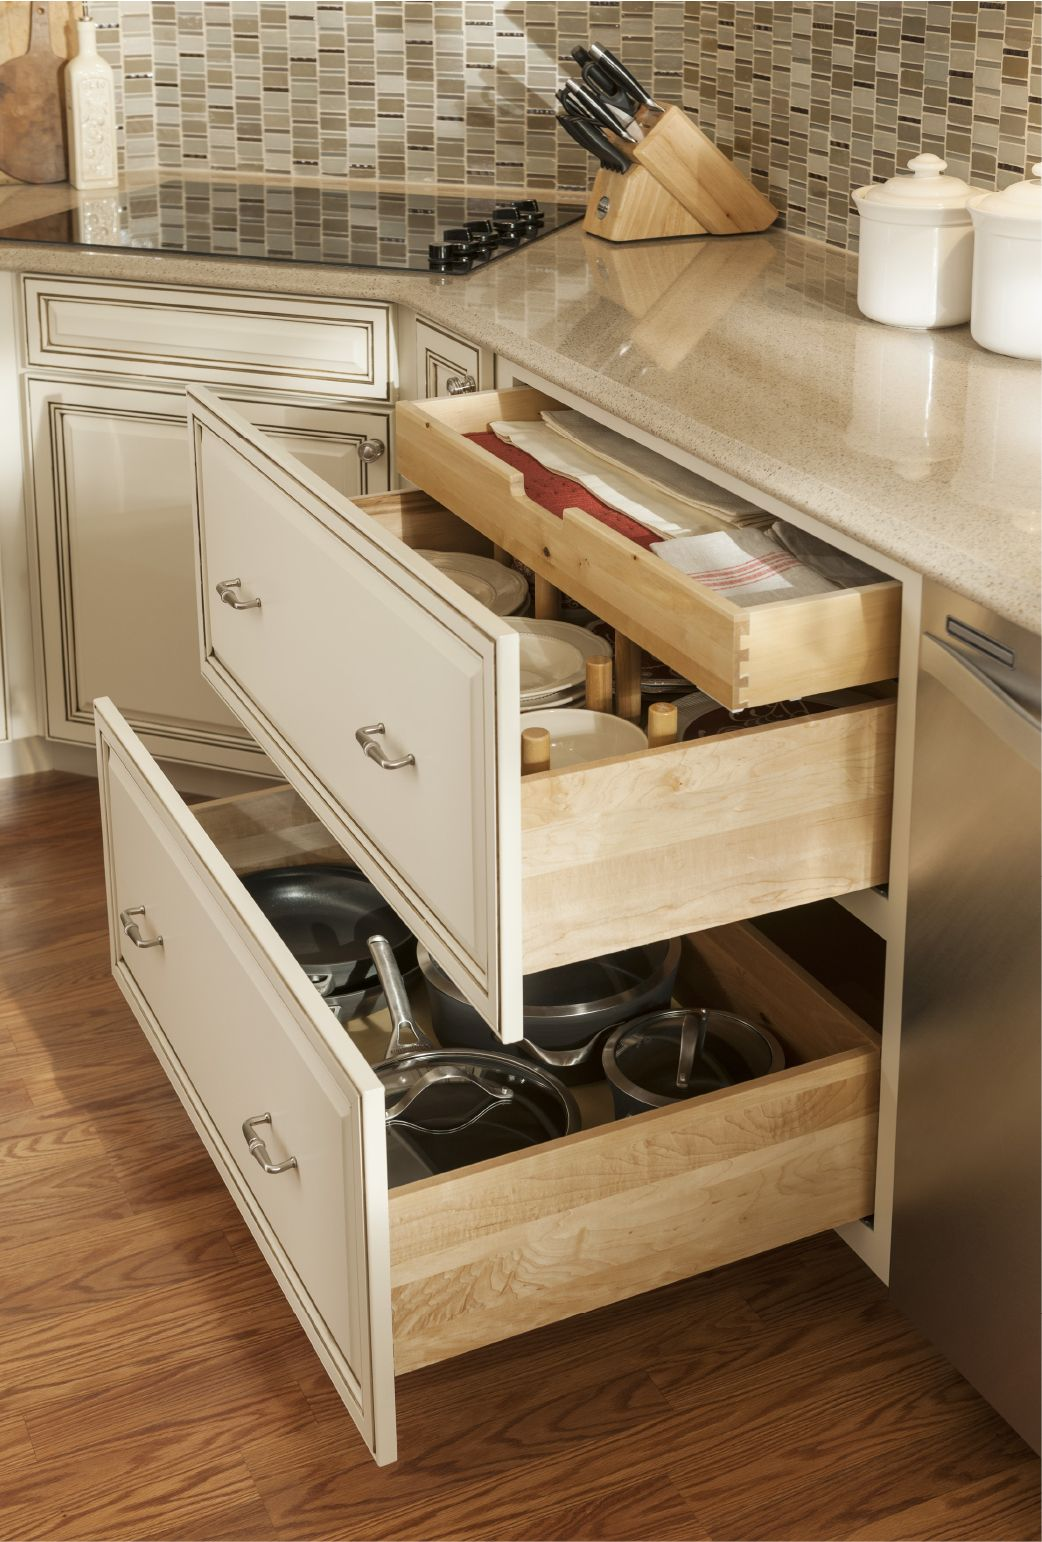 Two Drawer Base With Scalloped Tray Design By Allen Roth Kitchen Design Kitchen And Bath Design Kitchen Layout